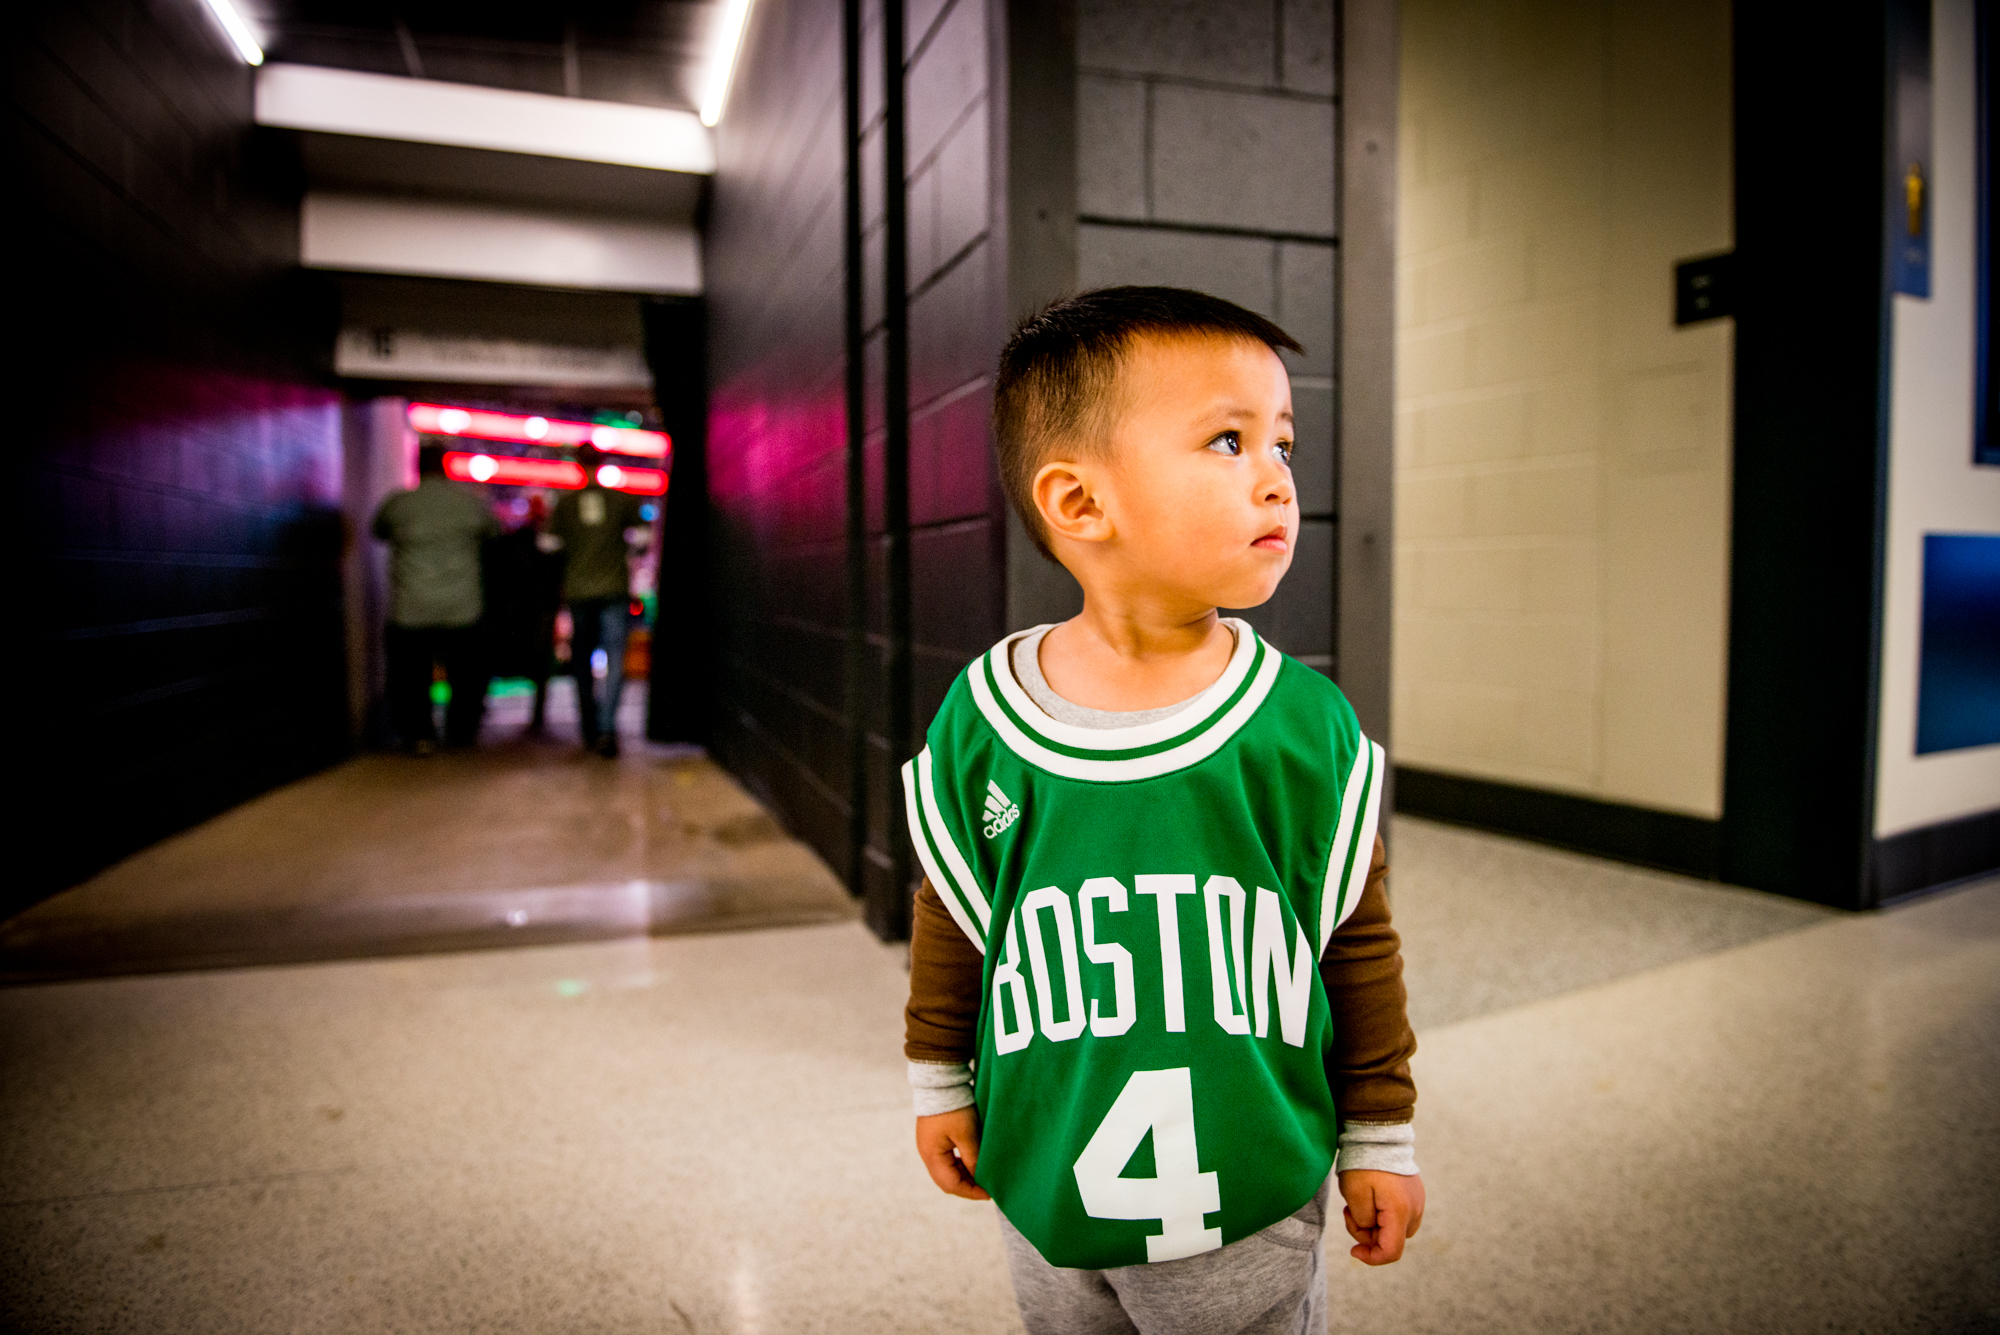 Celtics_Courtside_121615-786.jpg